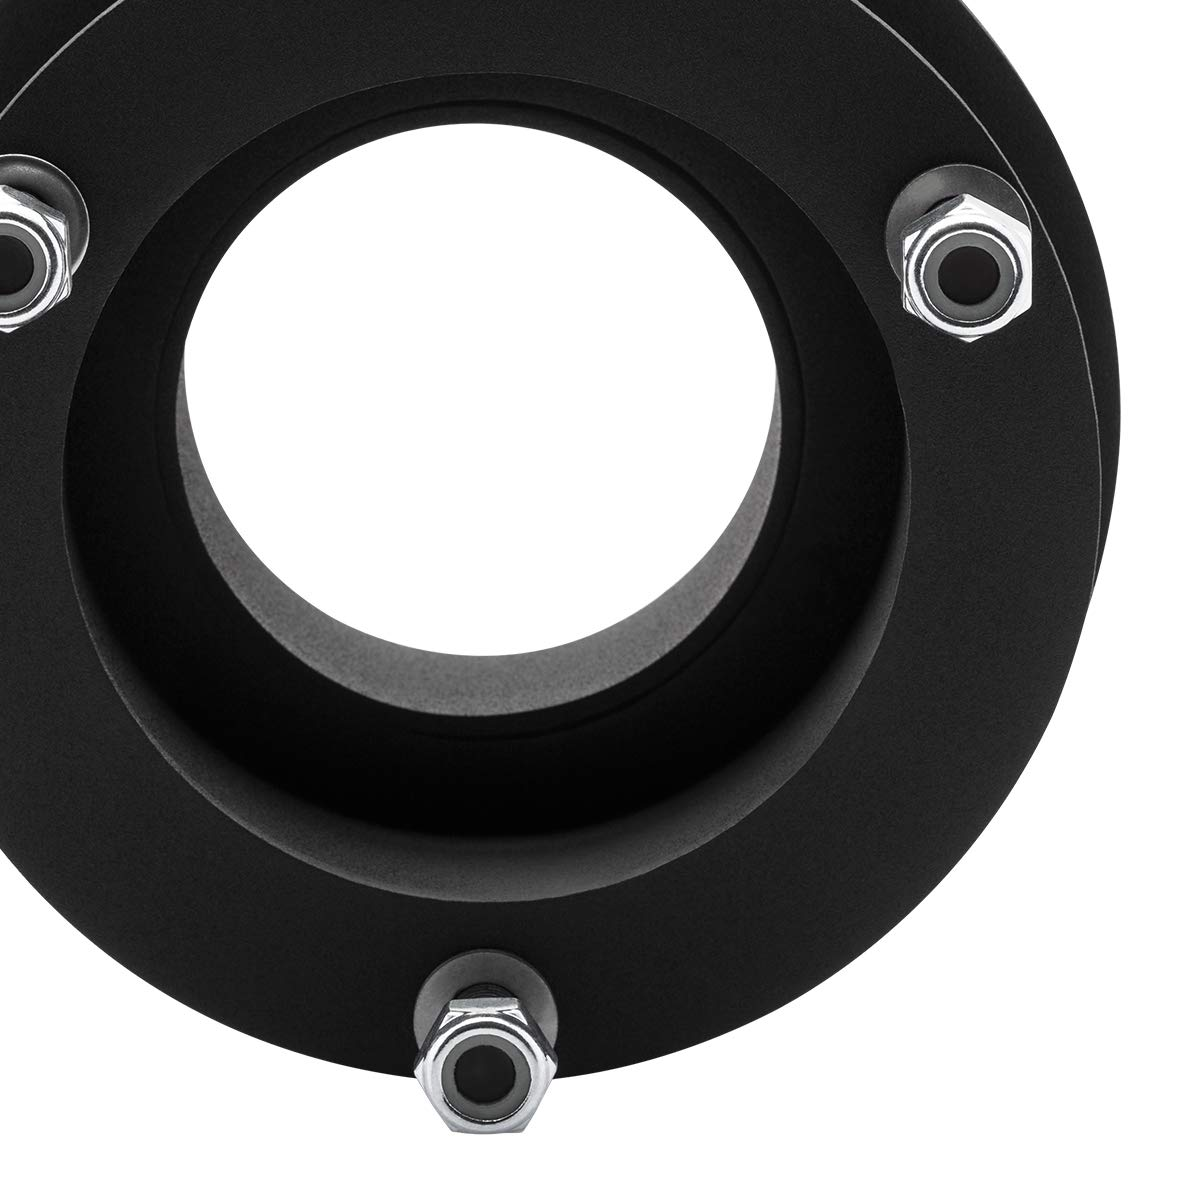 3.5 Front Lift Kit for 1994-2012 Dodge Ram 2500 3500 4WD and 1994-2001 Dodge Ram 1500 4WD Front Carbon Steel Spring Spacers Supreme Suspensions